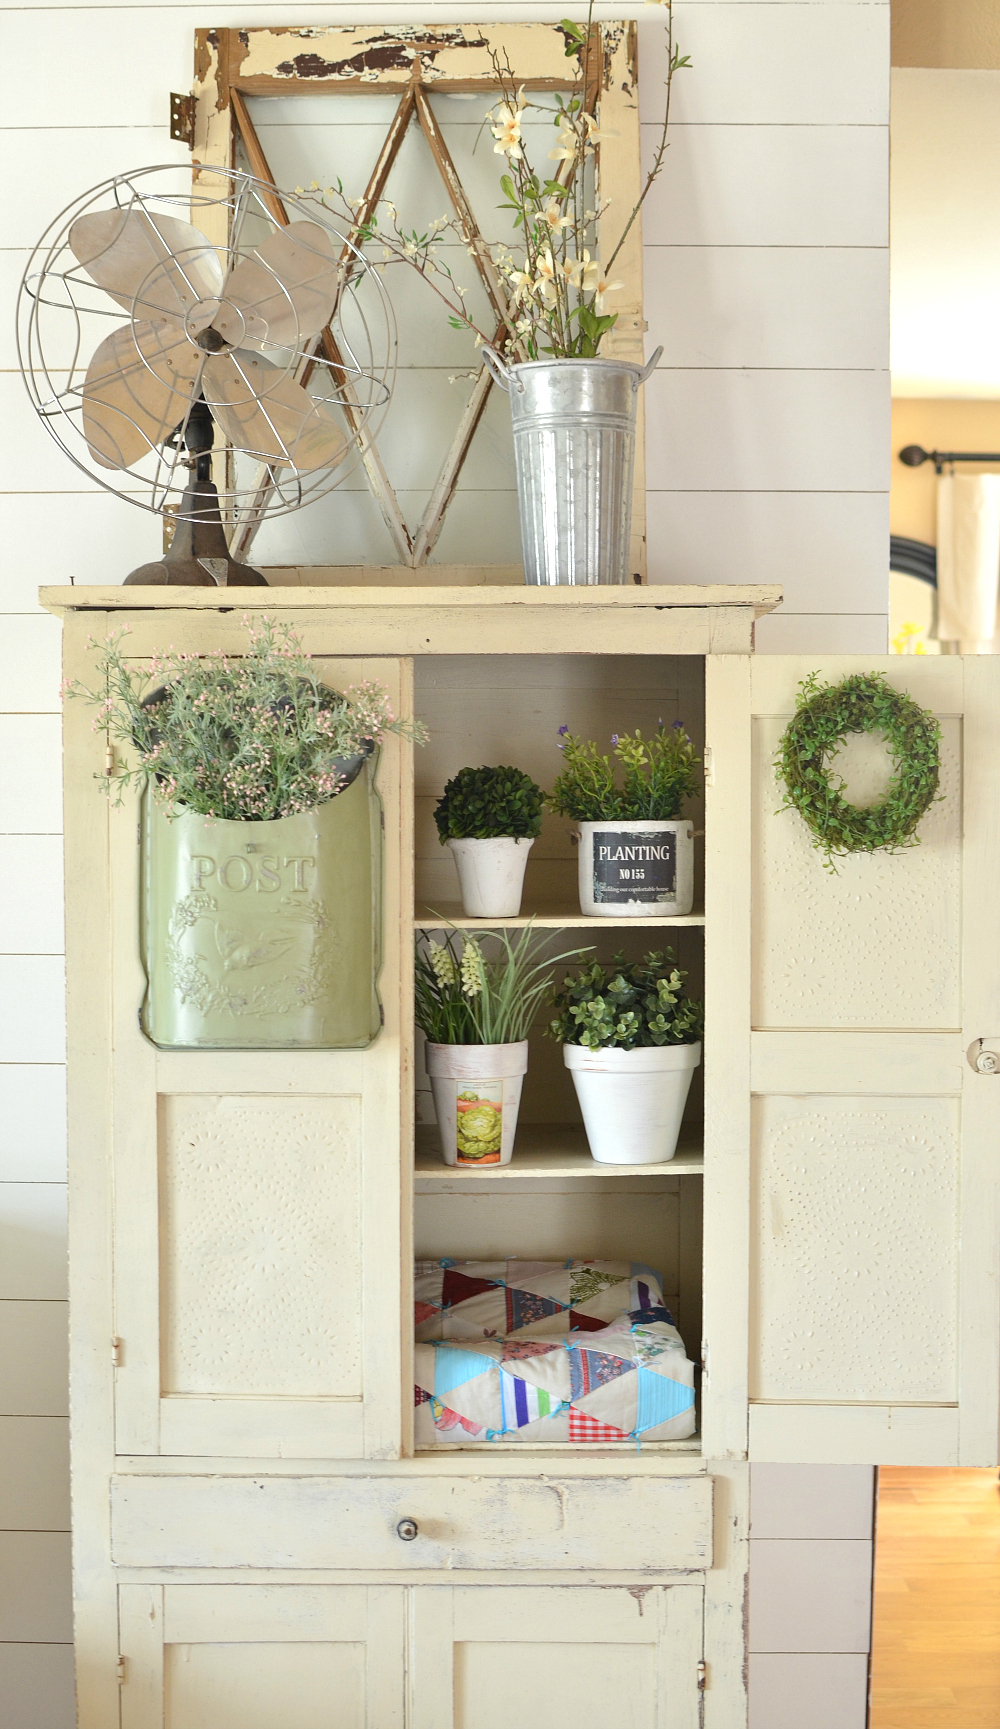 Simple and Beautiful Ways Decorate For Spring on a Budget. Farmhouse style decor ideas for spring.